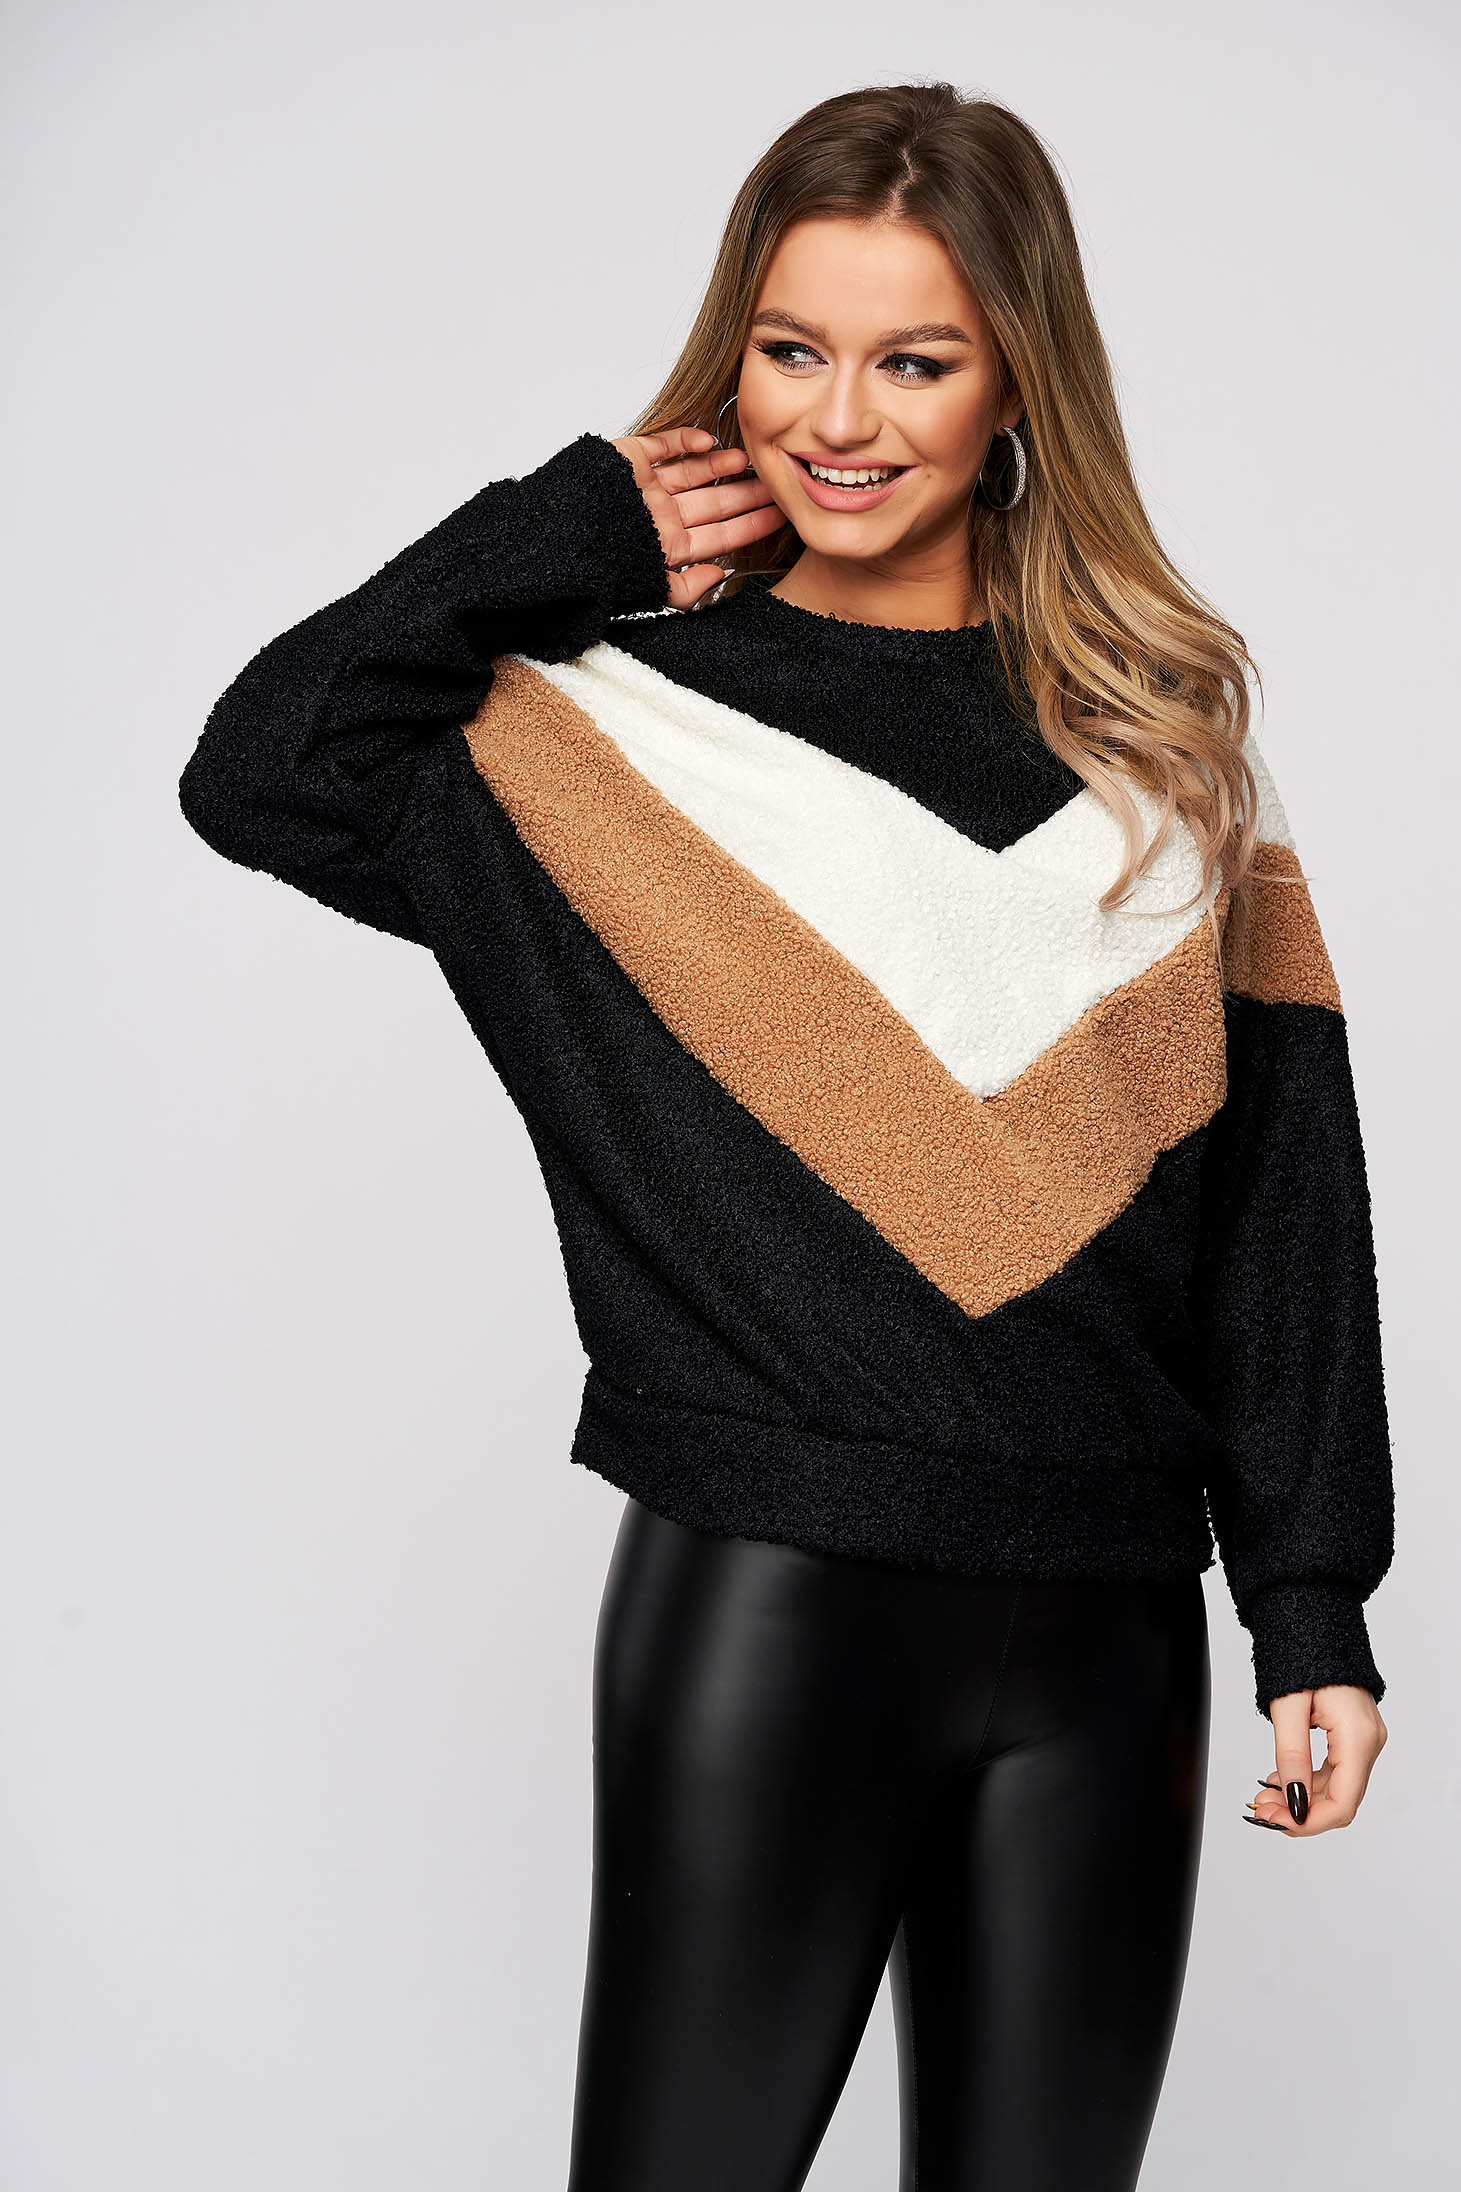 Black sweater from elastic and fine fabric with rounded cleavage flared from fluffy fabric